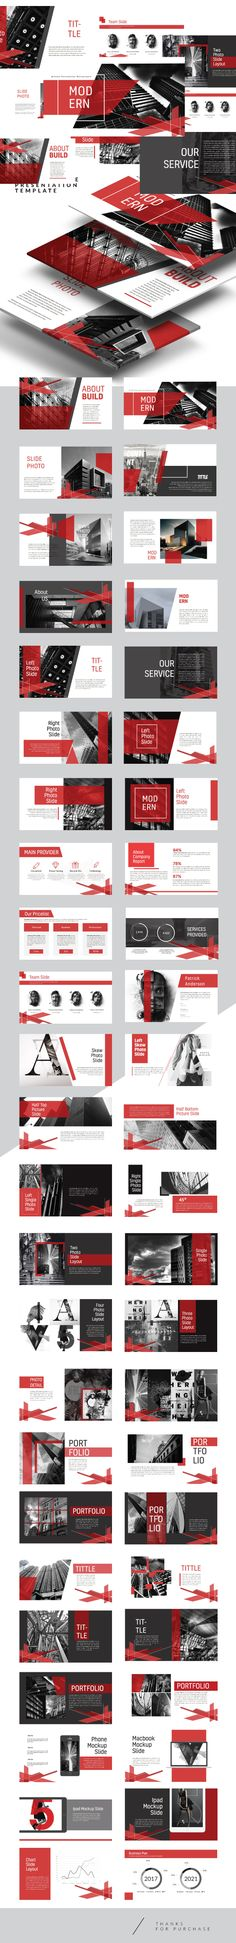 Arch - Creative Multipurpose Keynote Template - #Creative #Keynote #Templates Download here:  https://graphicriver.net/item/arch-creative-multipurpose-keynote-template/19530749?ref=alena994